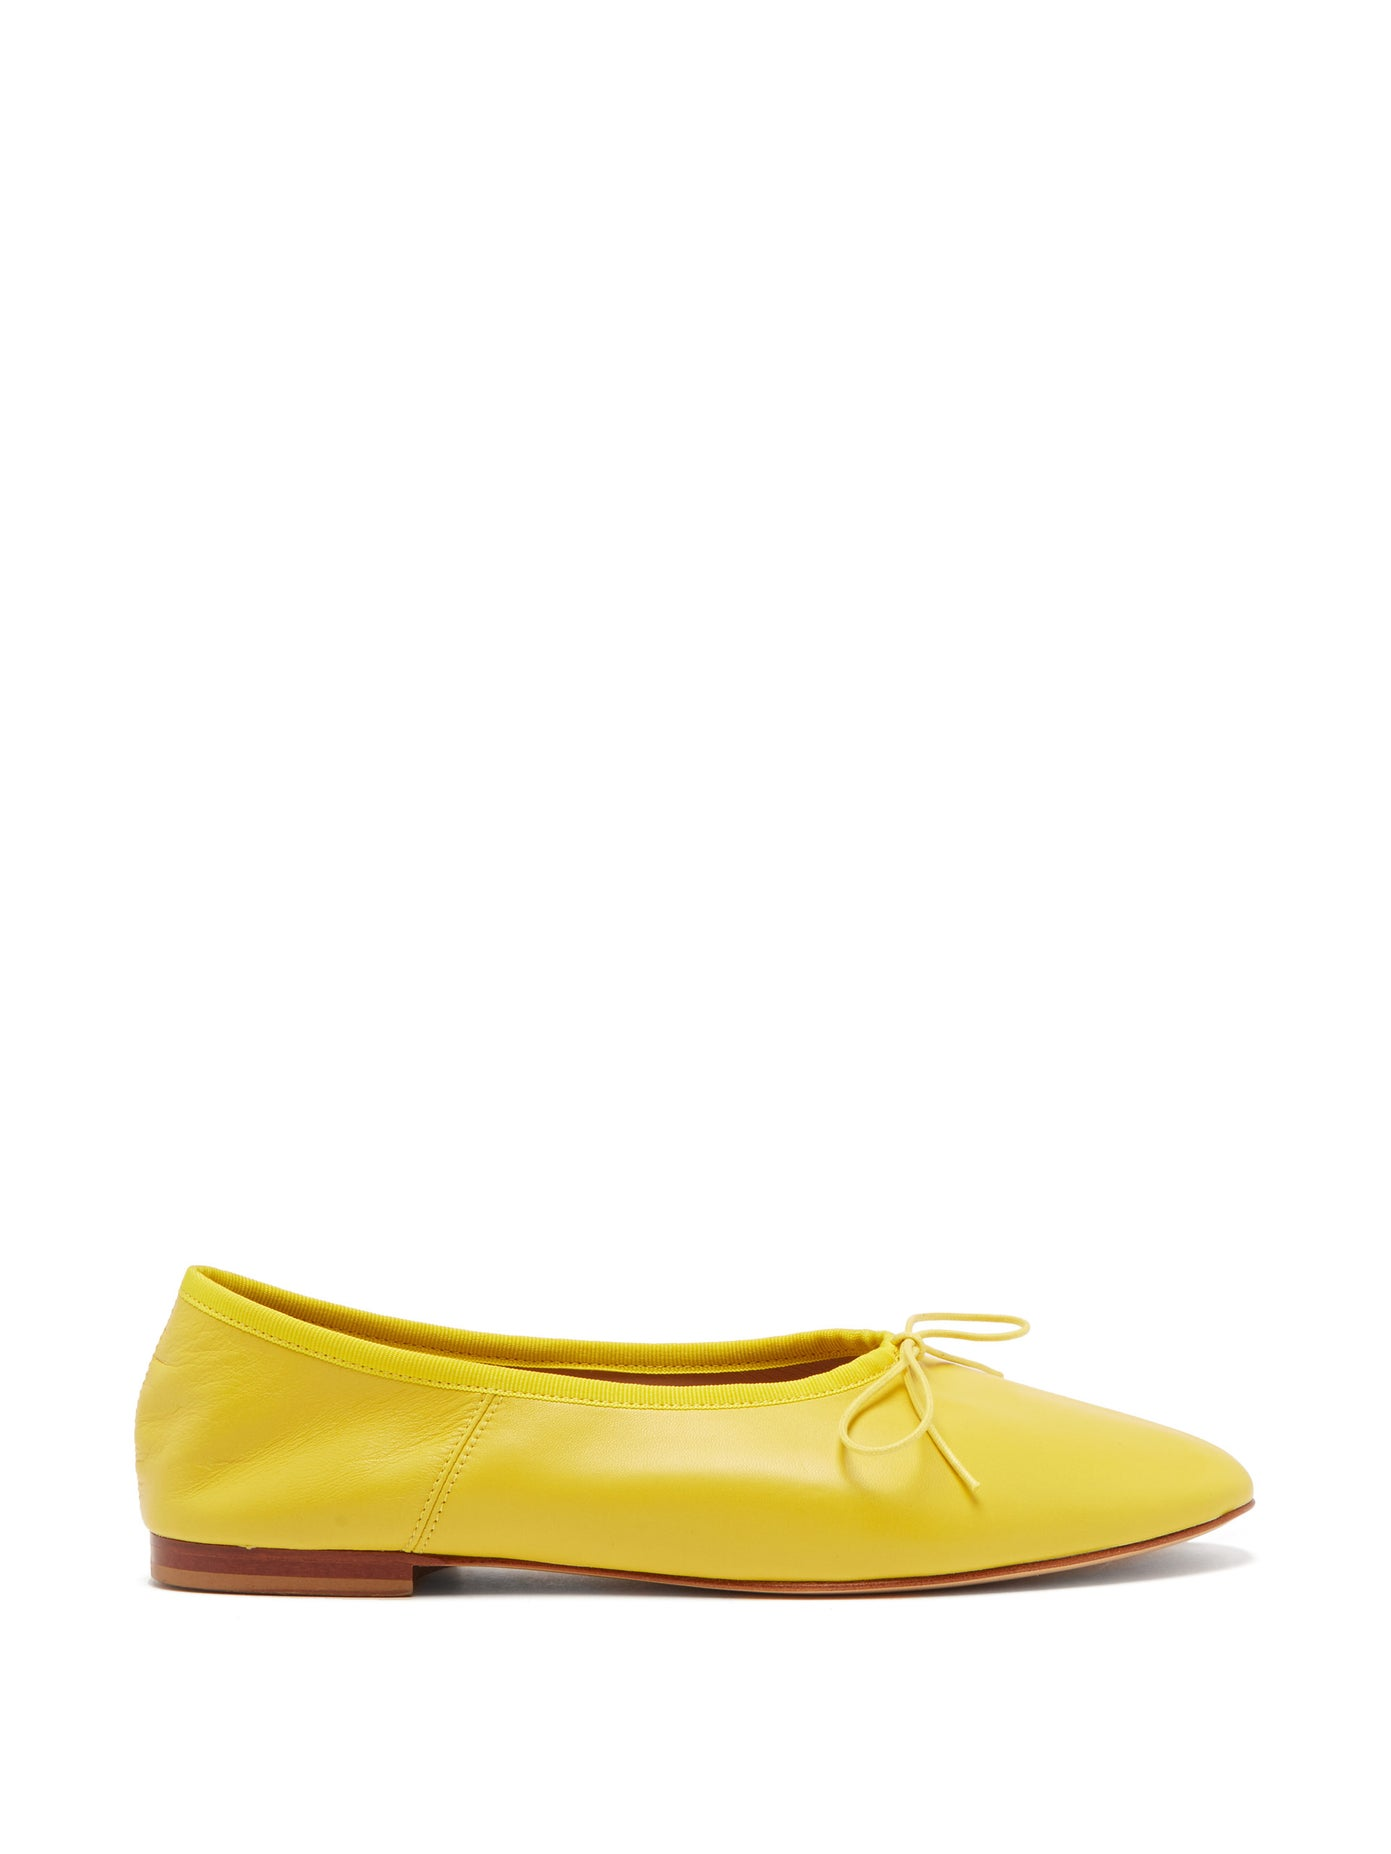 Dream Leather Ballet Flats